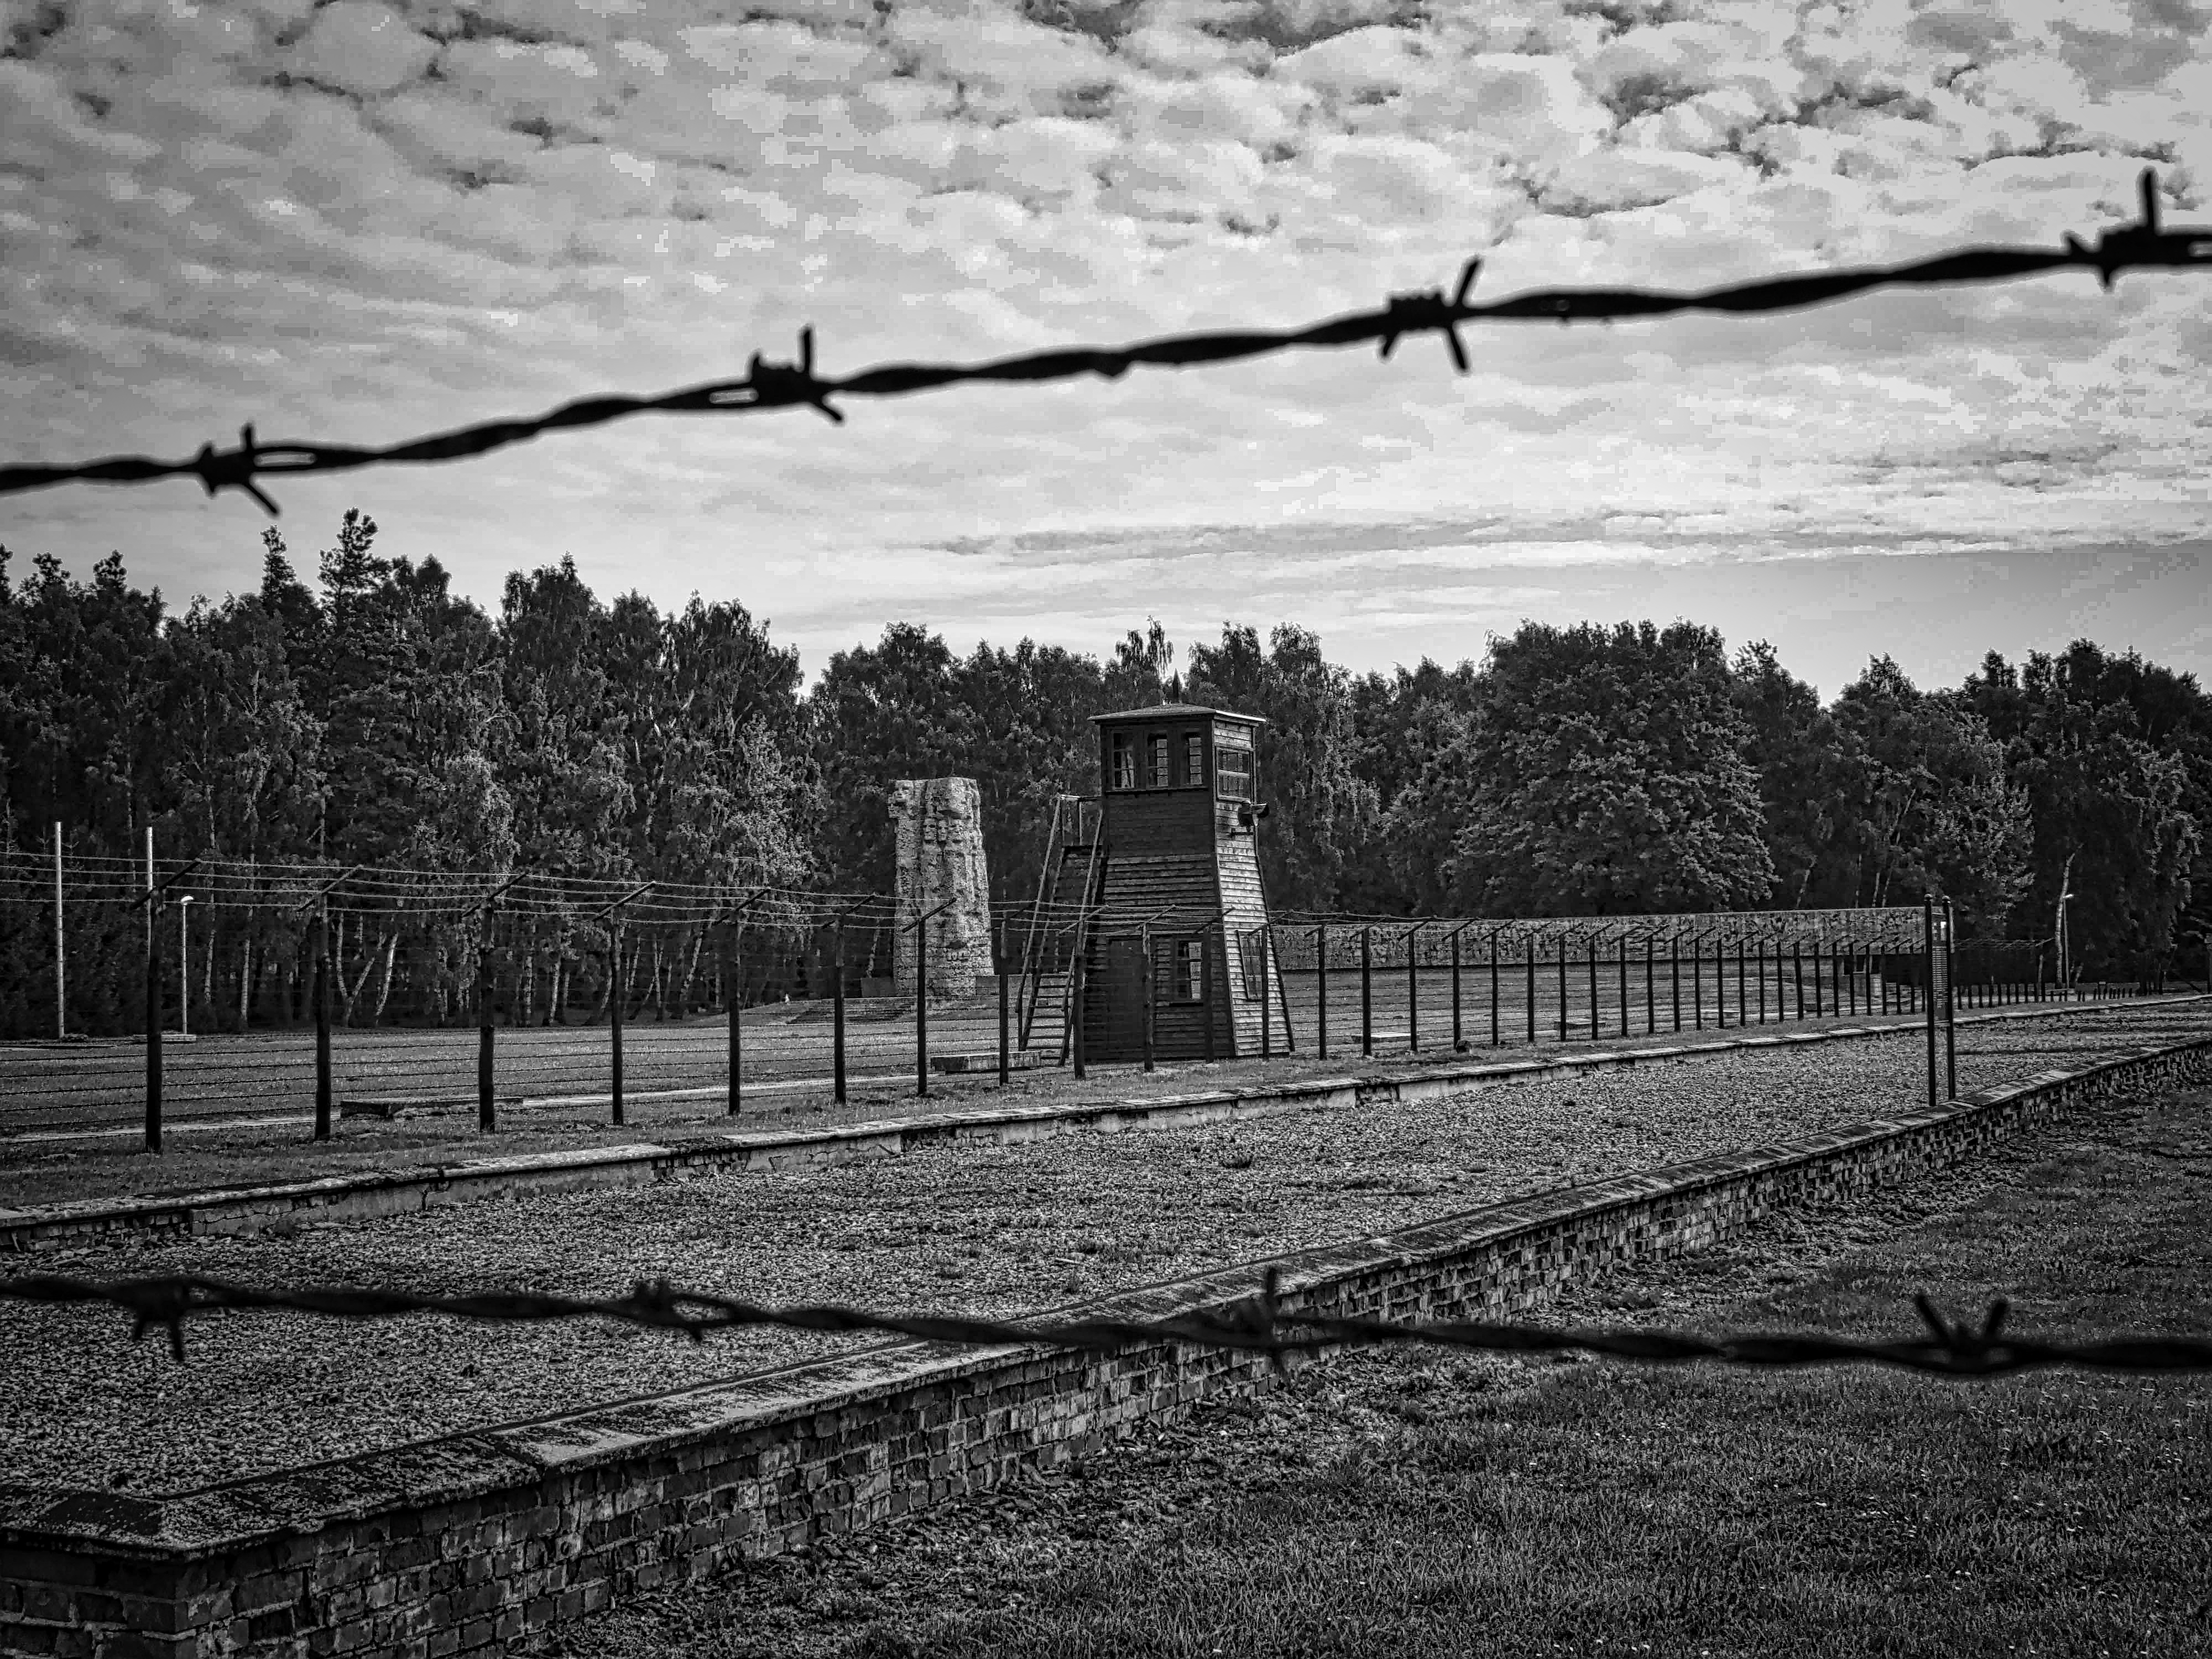 Facts about Concentration Camps